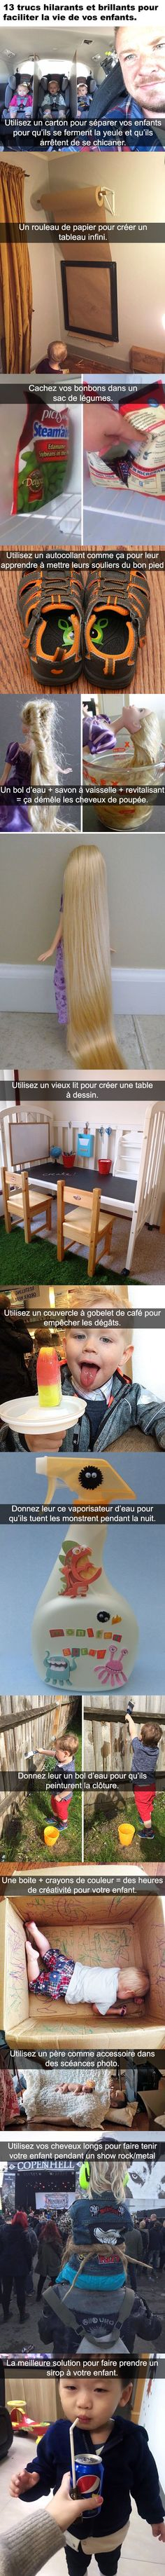 Ideas For Funny Pictures Ideas Life Hacks Funny Love, Funny Kids, Mom Funny, Super Funny Pictures, Image Fun, Videos Funny, Christmas Humor, Funny Texts, Tricks